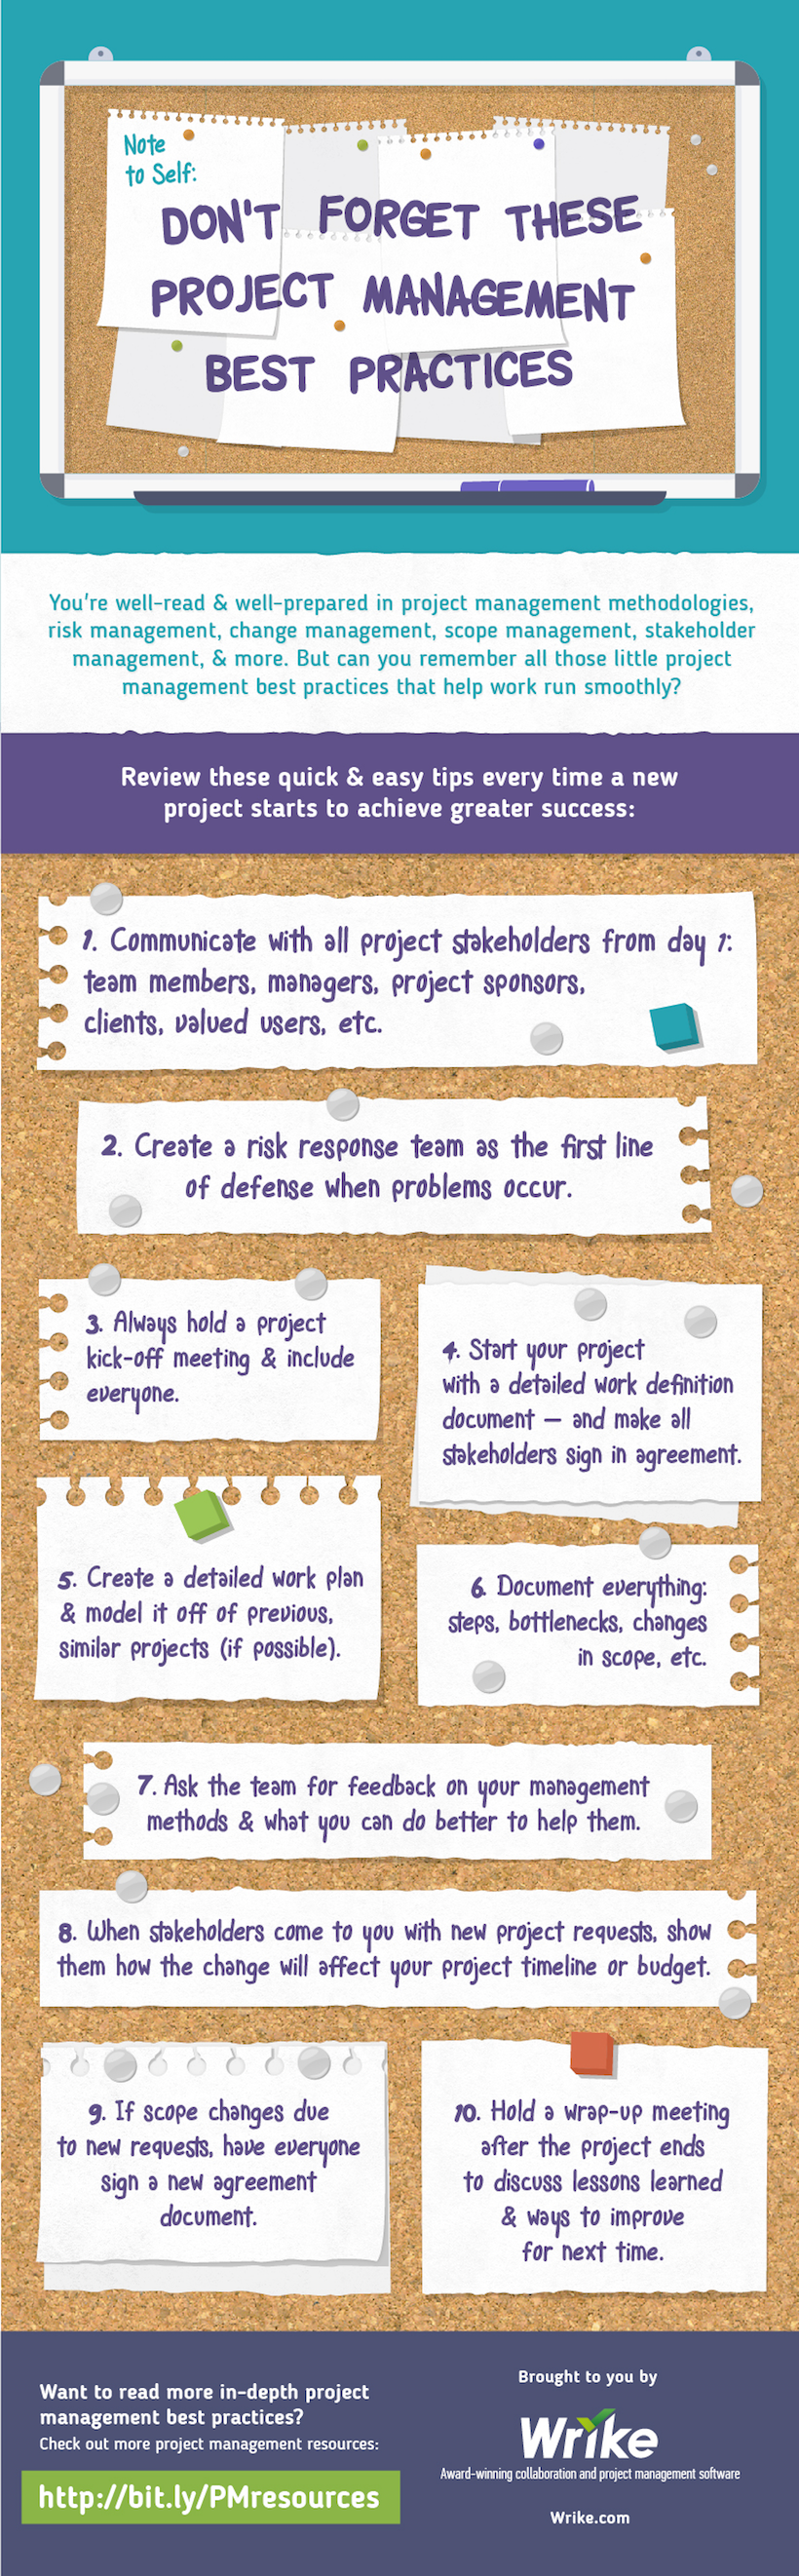 Don't Forget These 10 Project Management Best Practices (#Infographic)